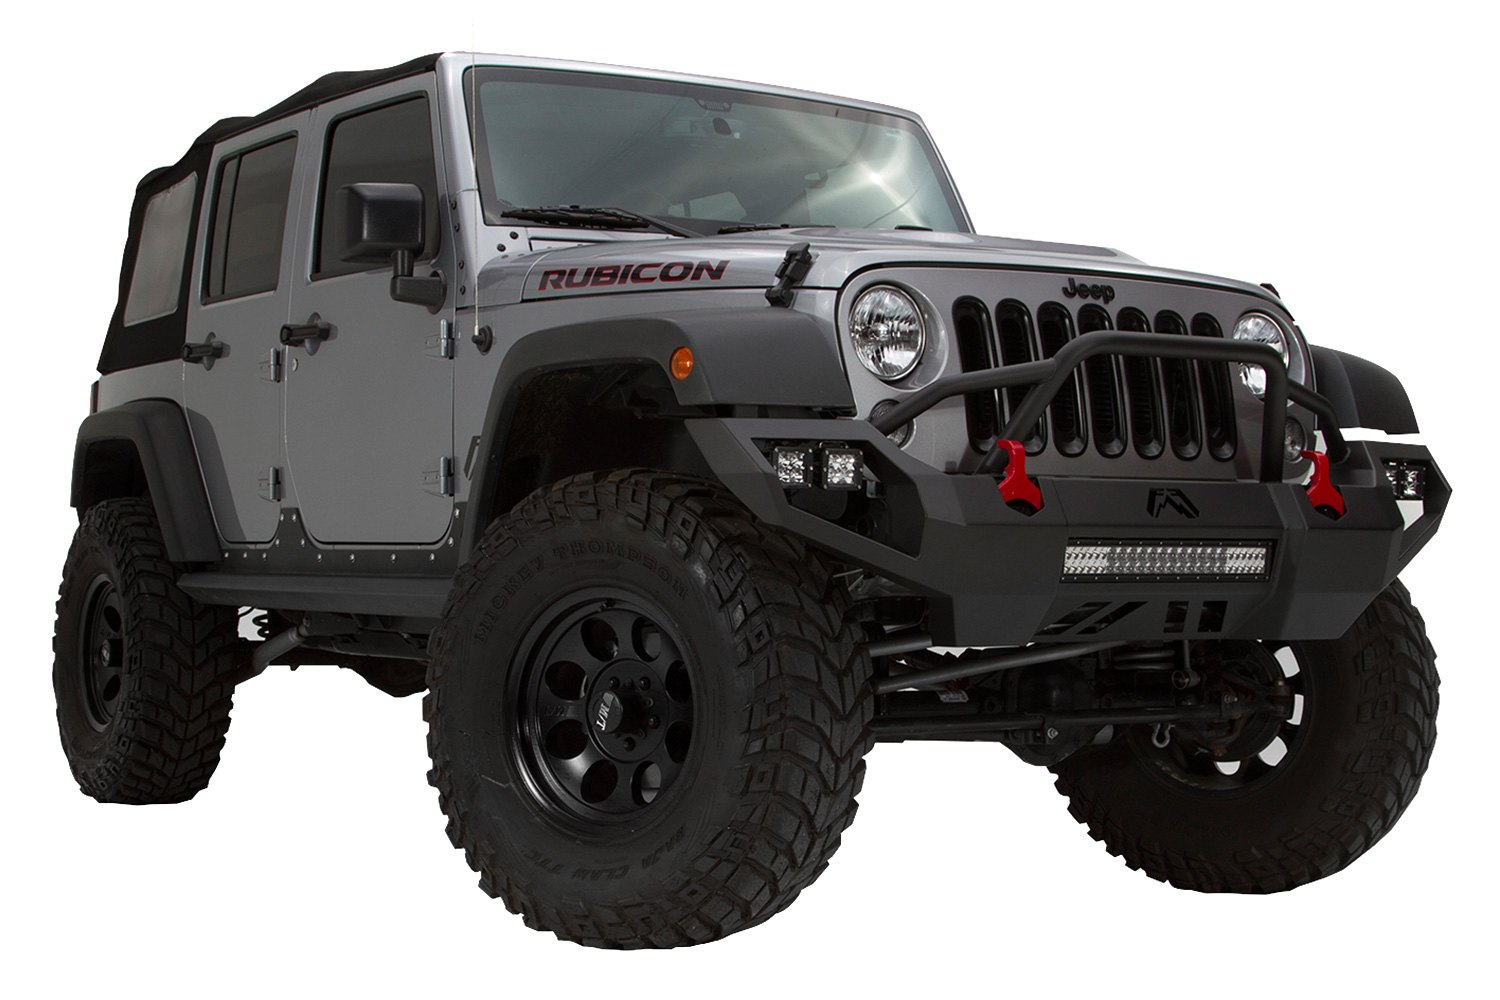 2012 Wrangler Bumper >> Fab Fours® - Jeep Wrangler 2012 Vengeance Full Width Front HD Bumper with Pre-Runner Guard